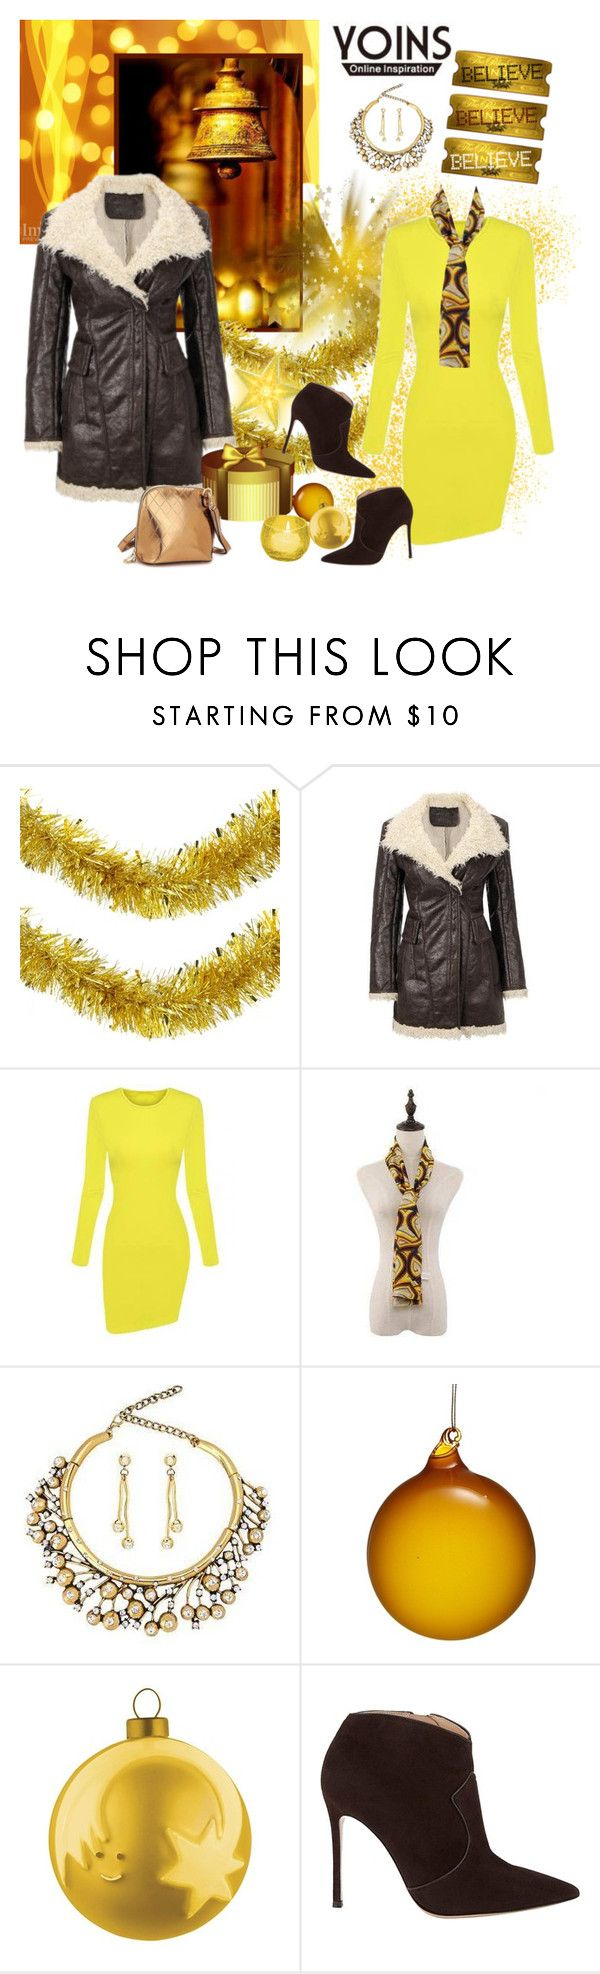 """Yoins....new 27."" by carola-corana ❤ liked on Polyvore featuring K.A. Weiste Oy, Jim Marvin, Alessi, Gianvito Rossi, yoins and yoinscollection"